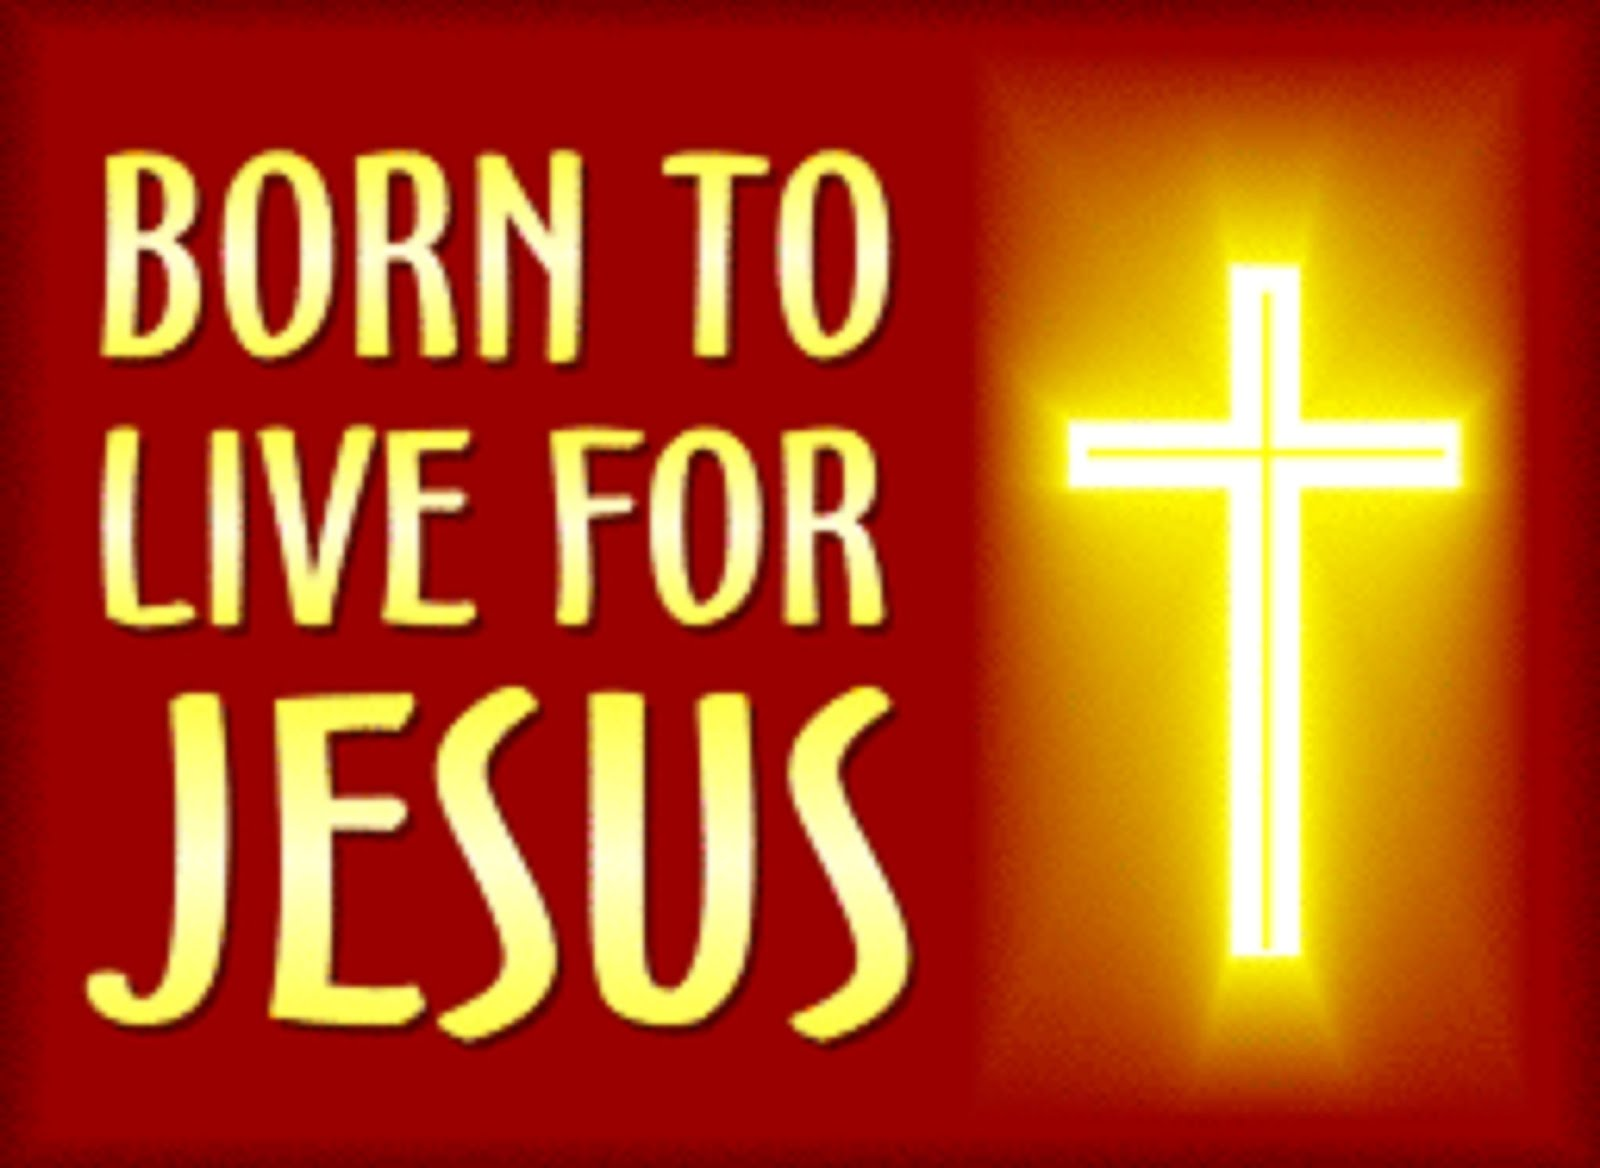 BORN TO LIVE FOR JESUS